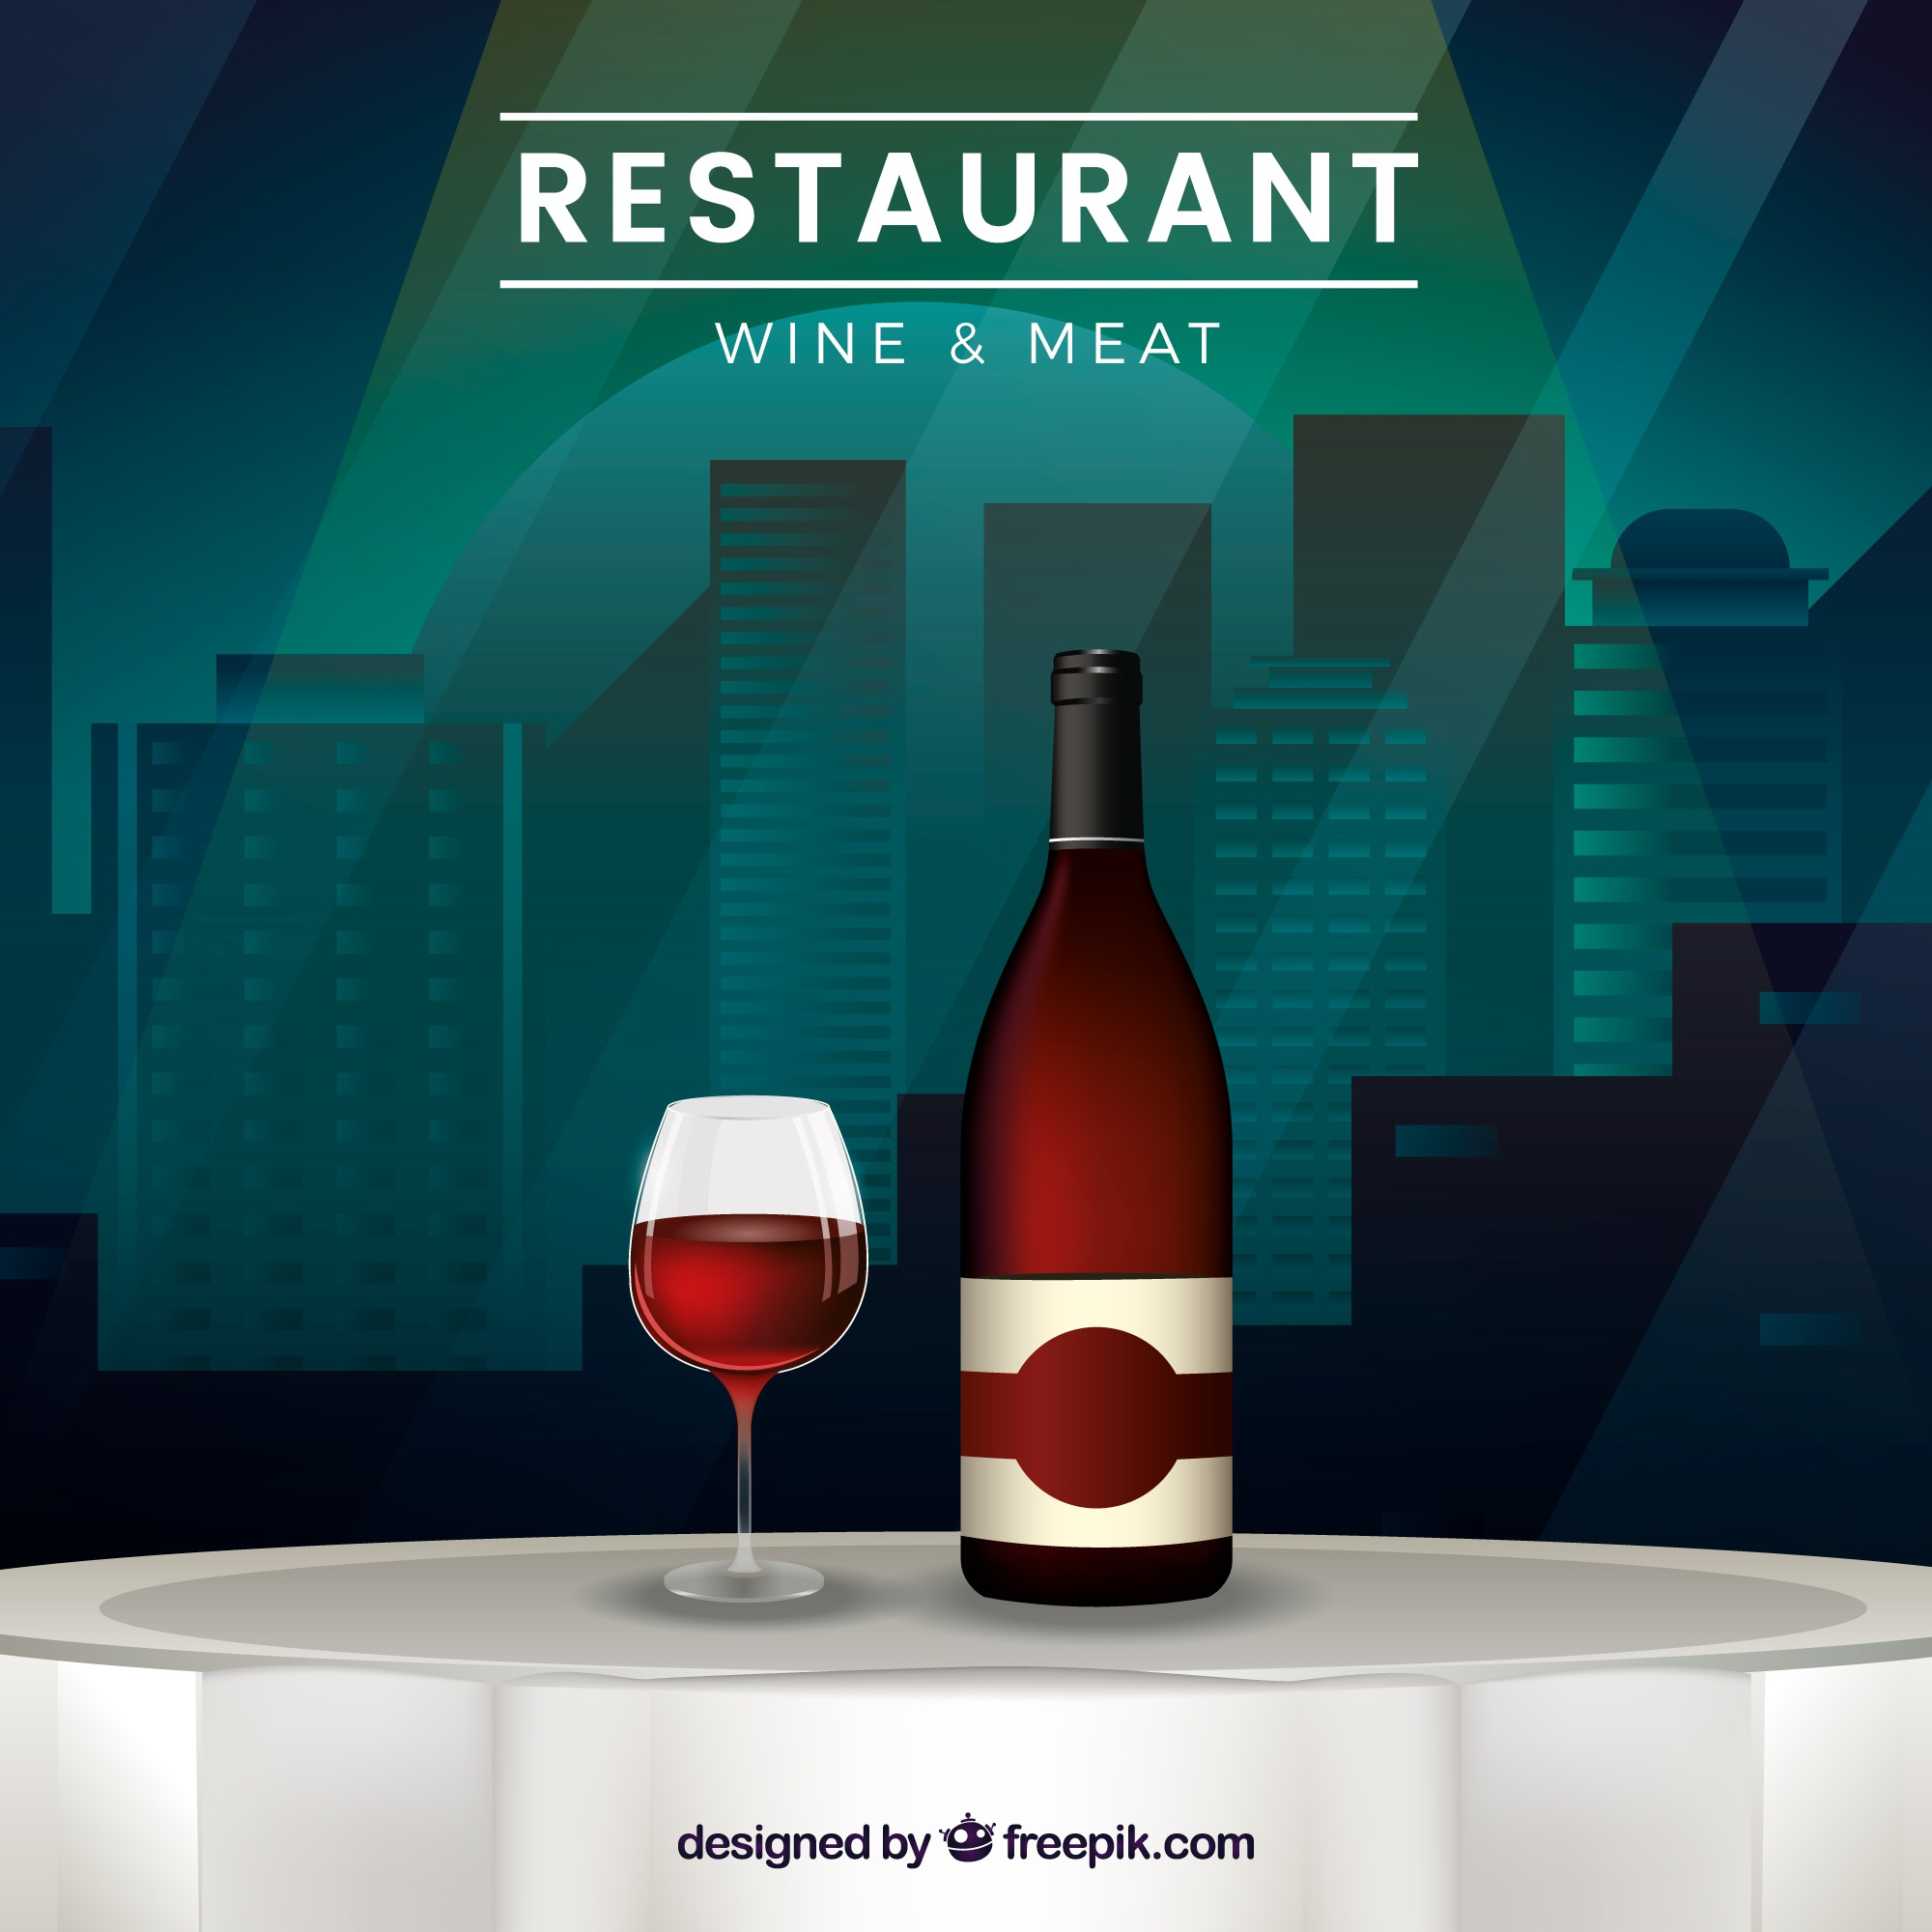 Restaurant table background with bottle of wine and glass